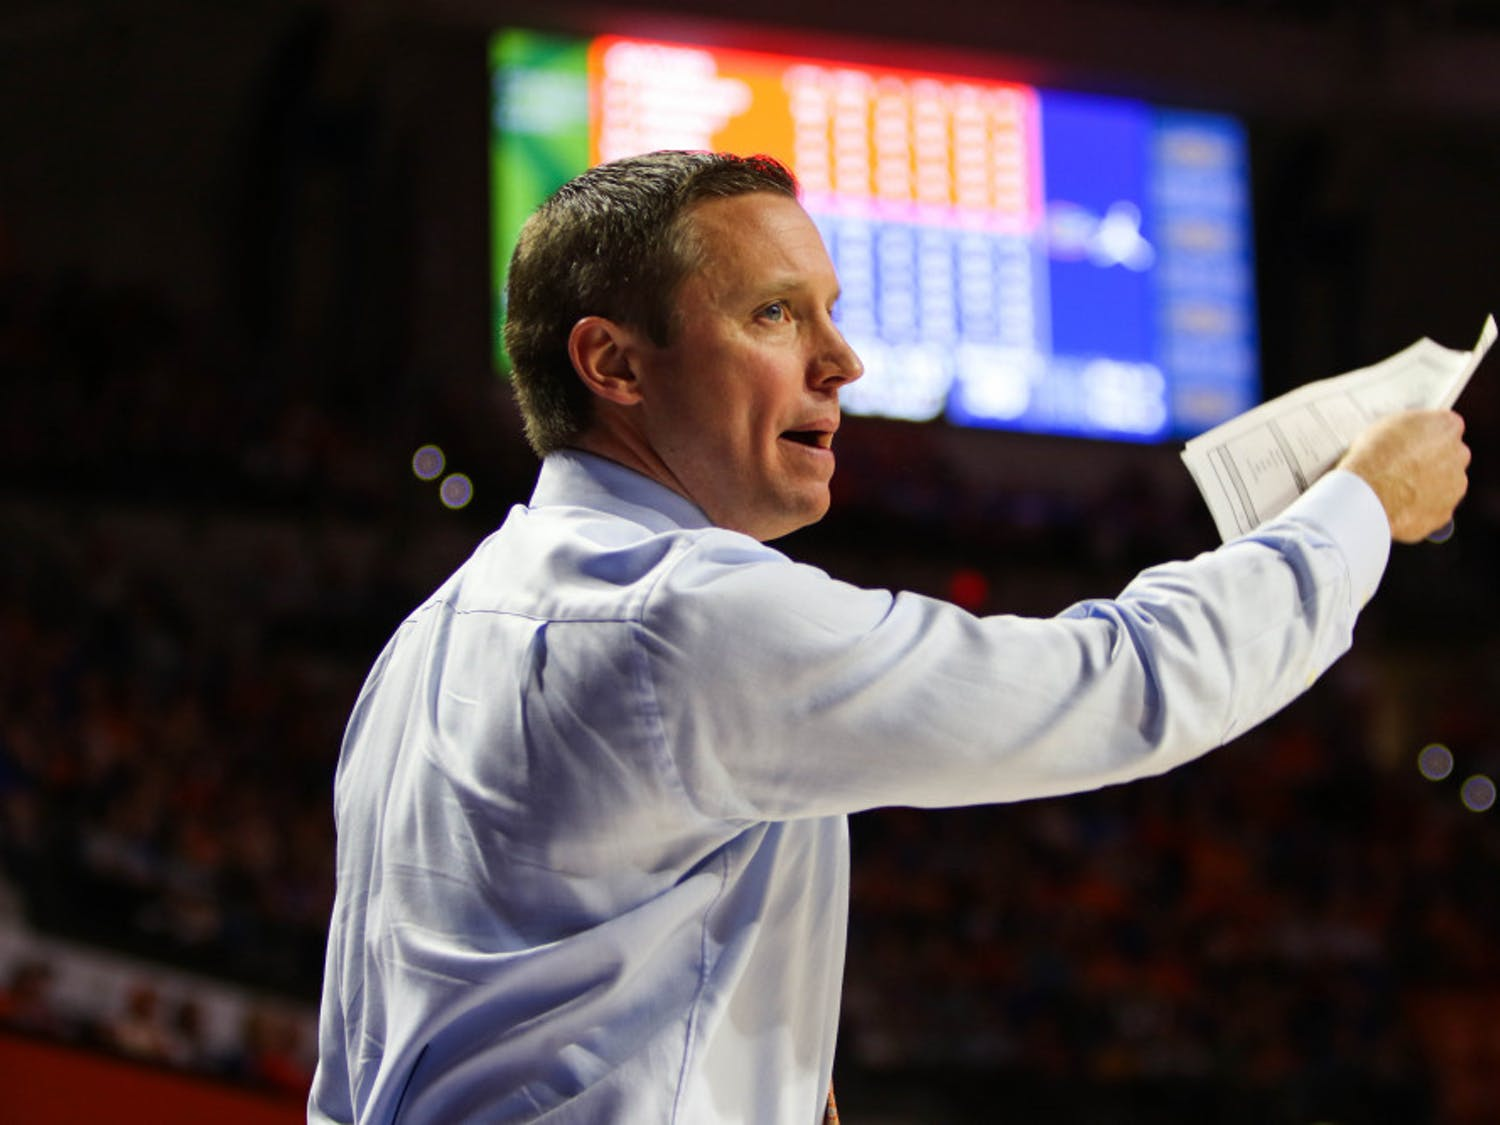 """The Gators turned the ball over 17 times during their 76-62 loss to Auburn on Tuesday. """"Could talk about it until we were blue in the face...Auburn has elite team speed. Active hands,"""" coach Mike White said."""